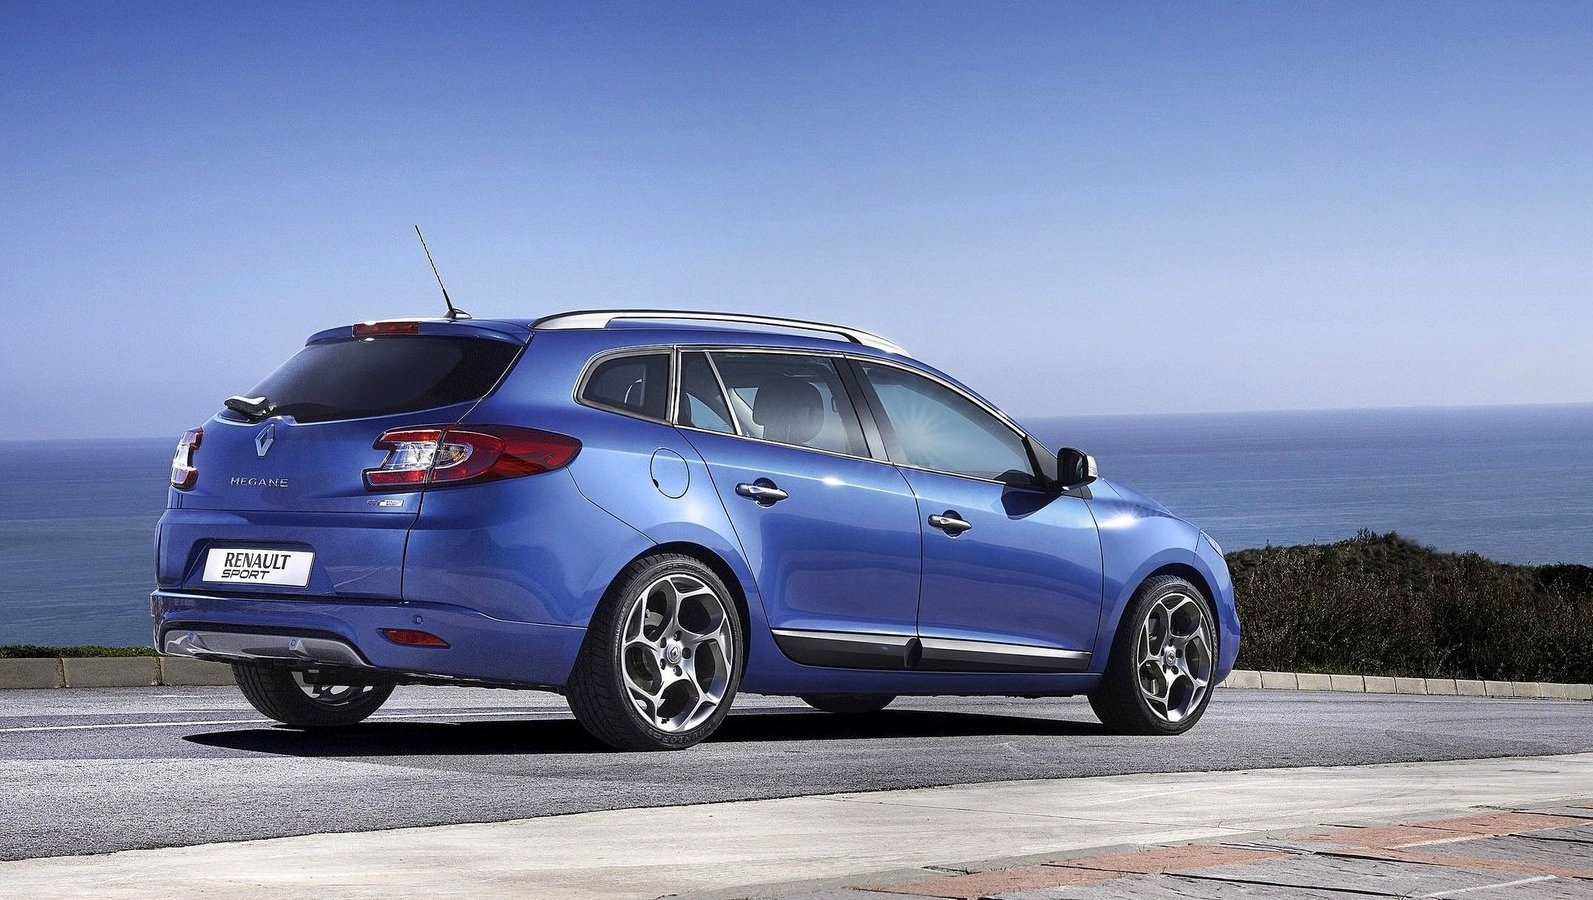 Renault Megane Gt 220 Estate Review Caradvice